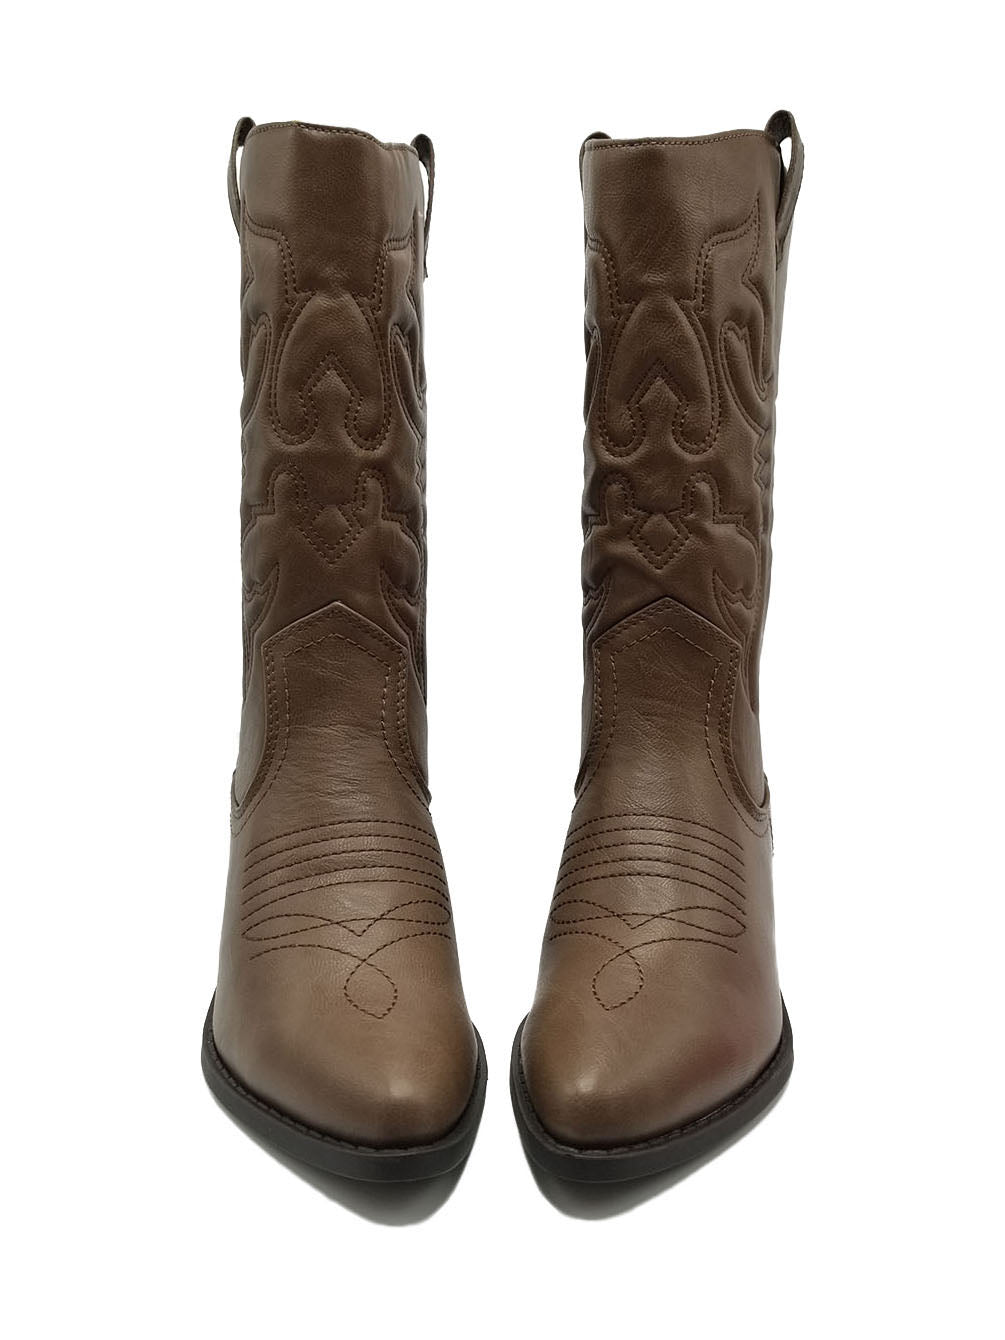 de1d7ca8805 Women Western Cowboy Pointed Toe Knee High Pull On Tabs Boots RENO-S